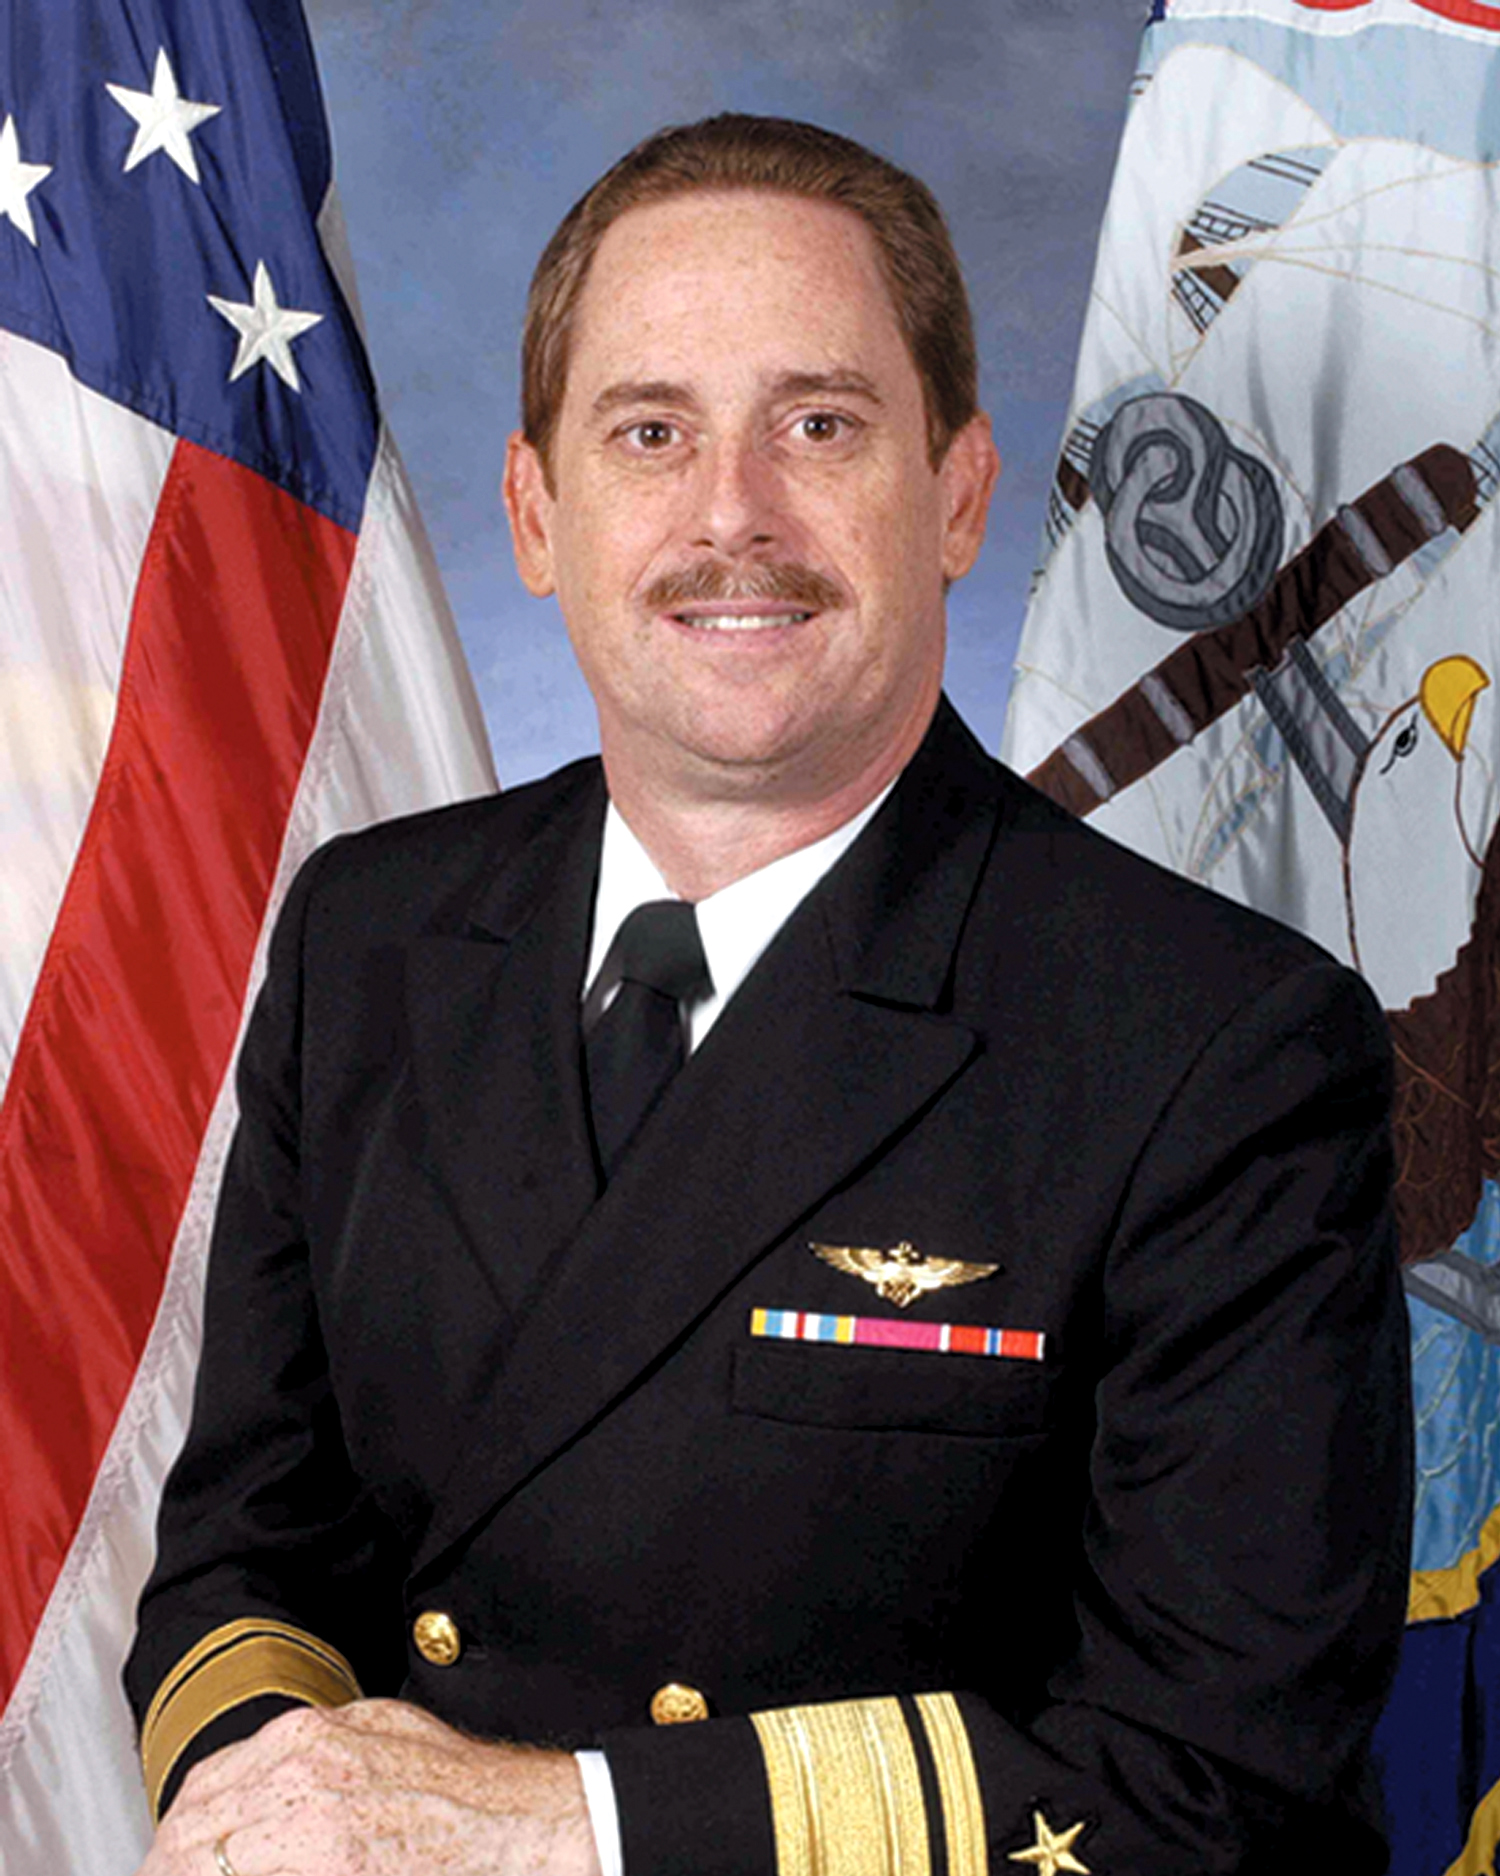 George E. Mayer United States admiral